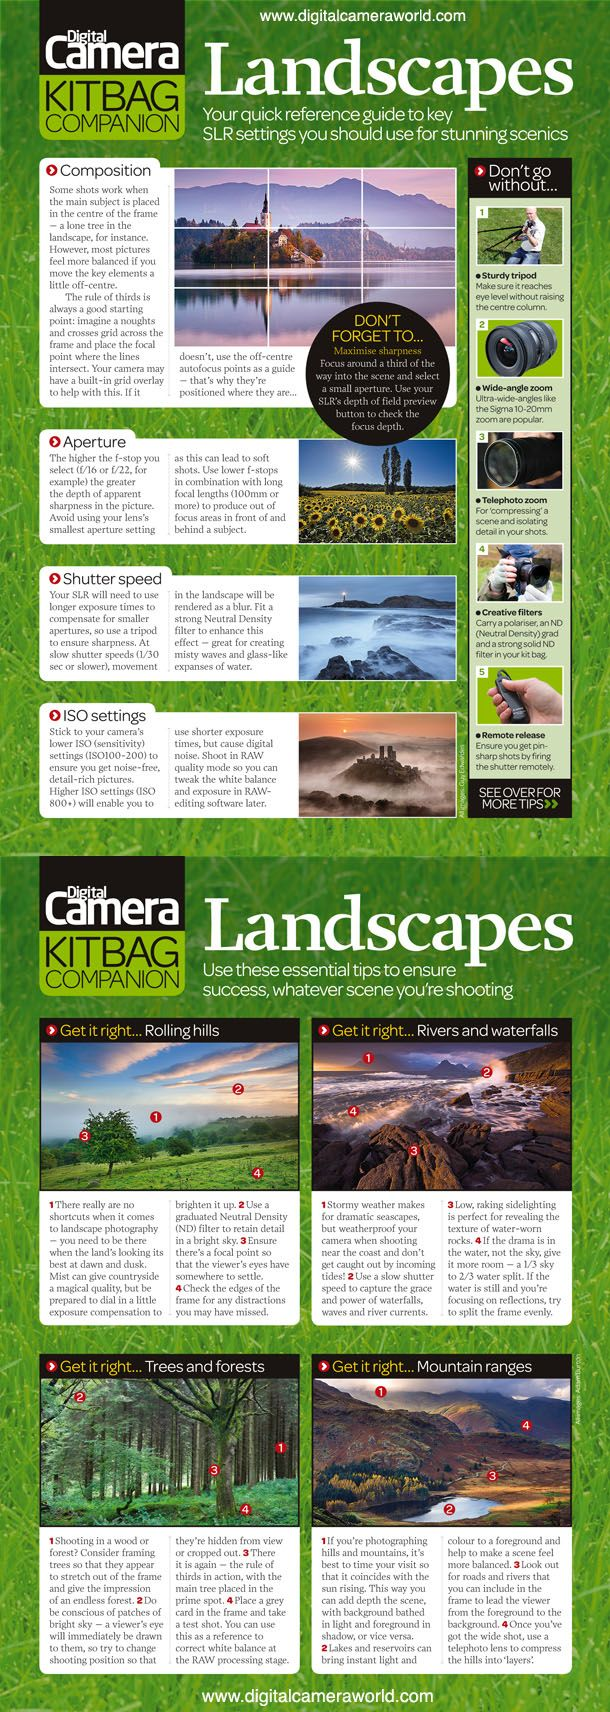 Landscapes: your quick reference guide to key SLR settings you should use for stunning scenics #Photography